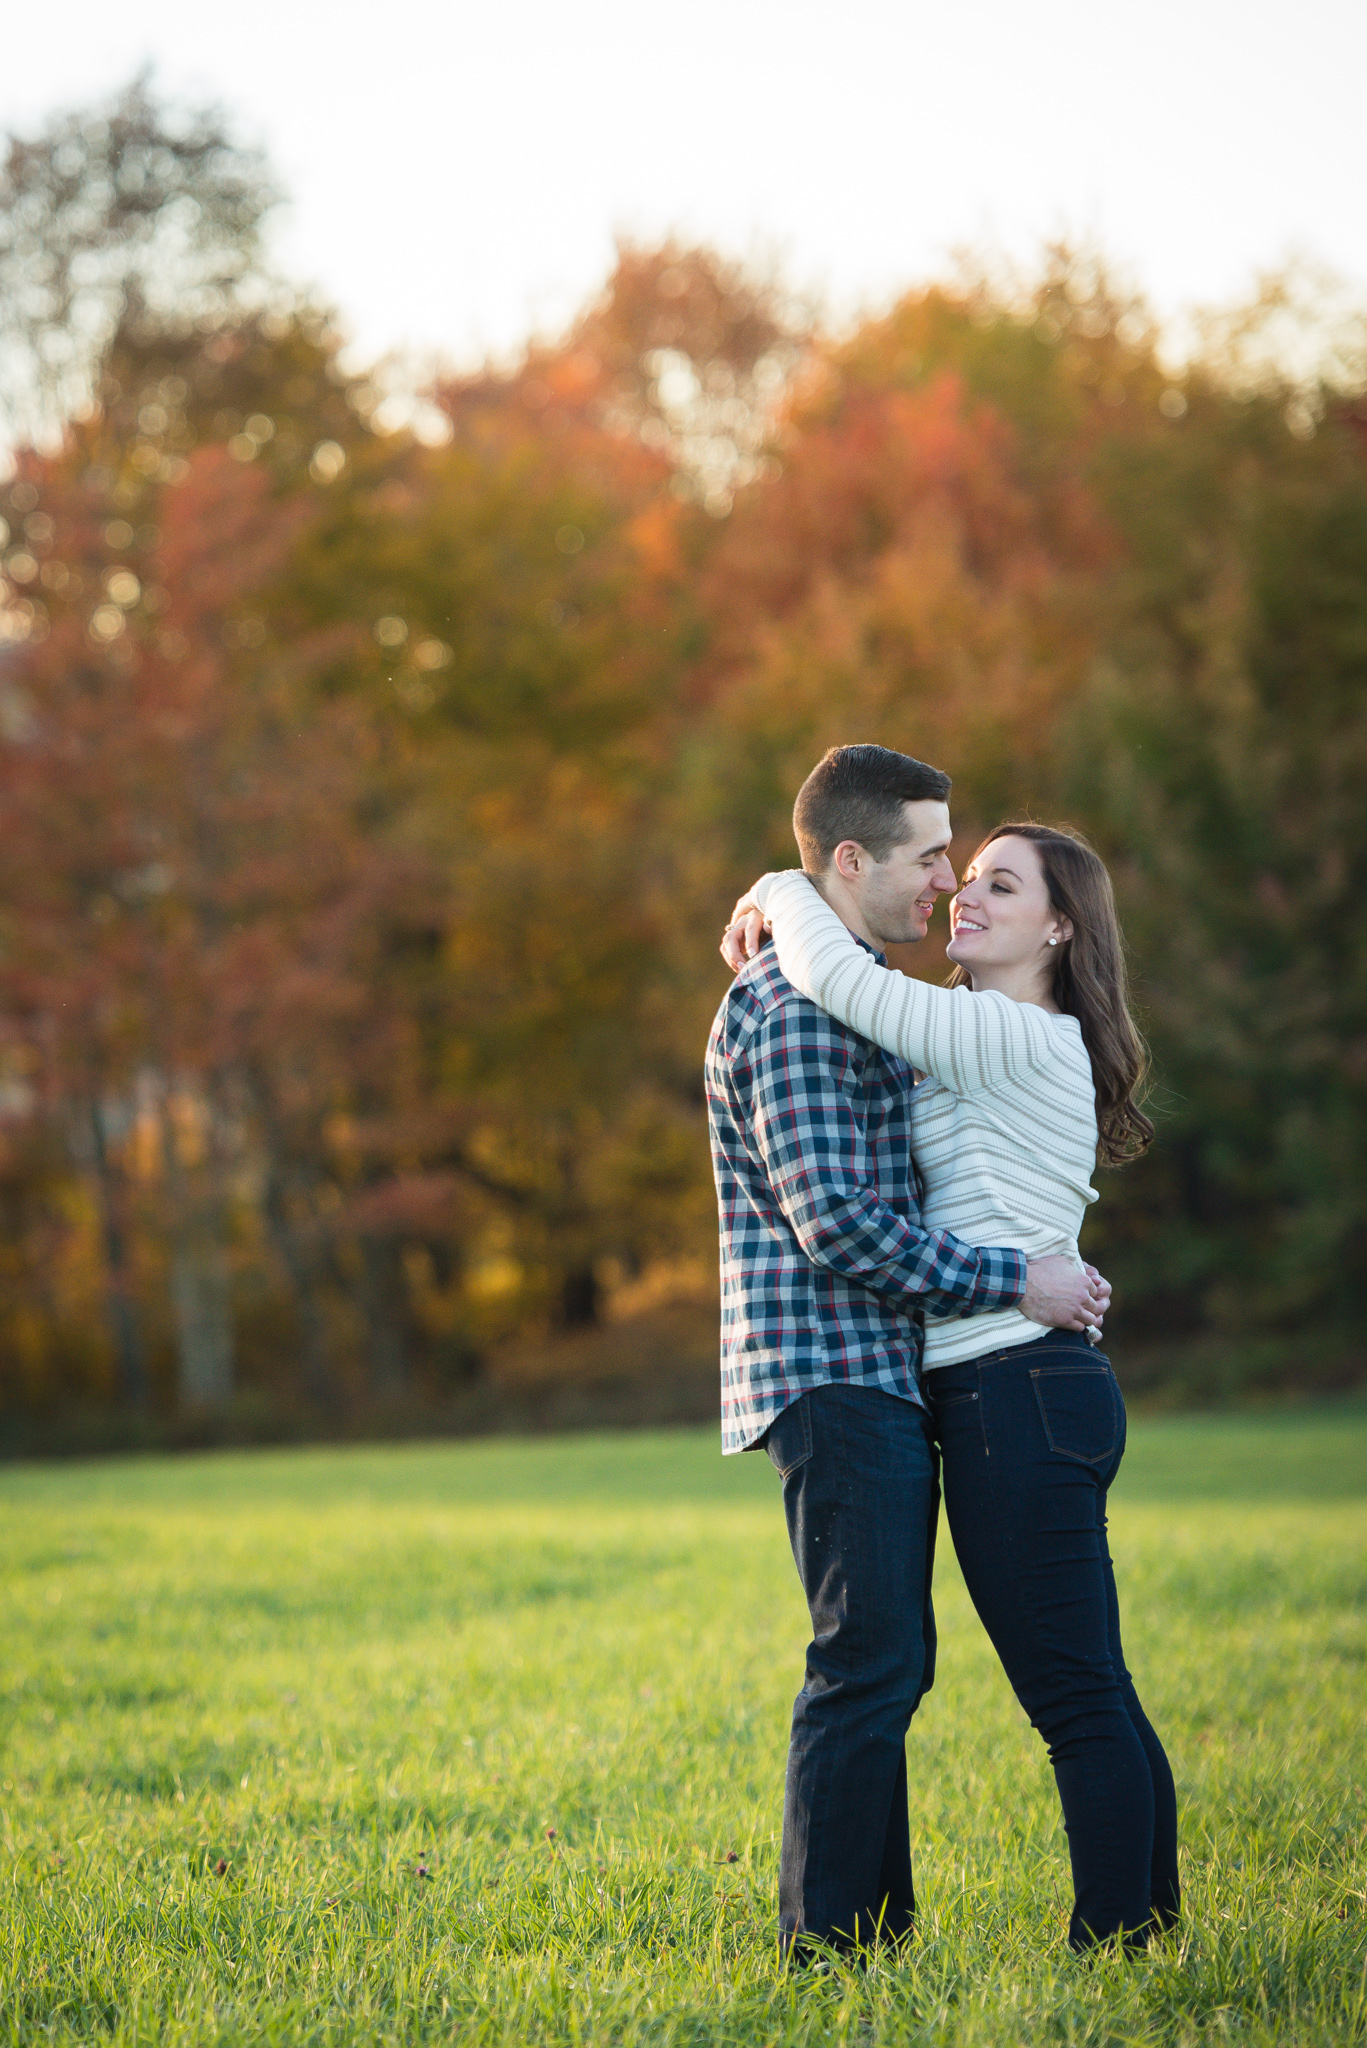 Farm-engagement-shoot-photography-steven-cottrell-lake-barn-13.jpg